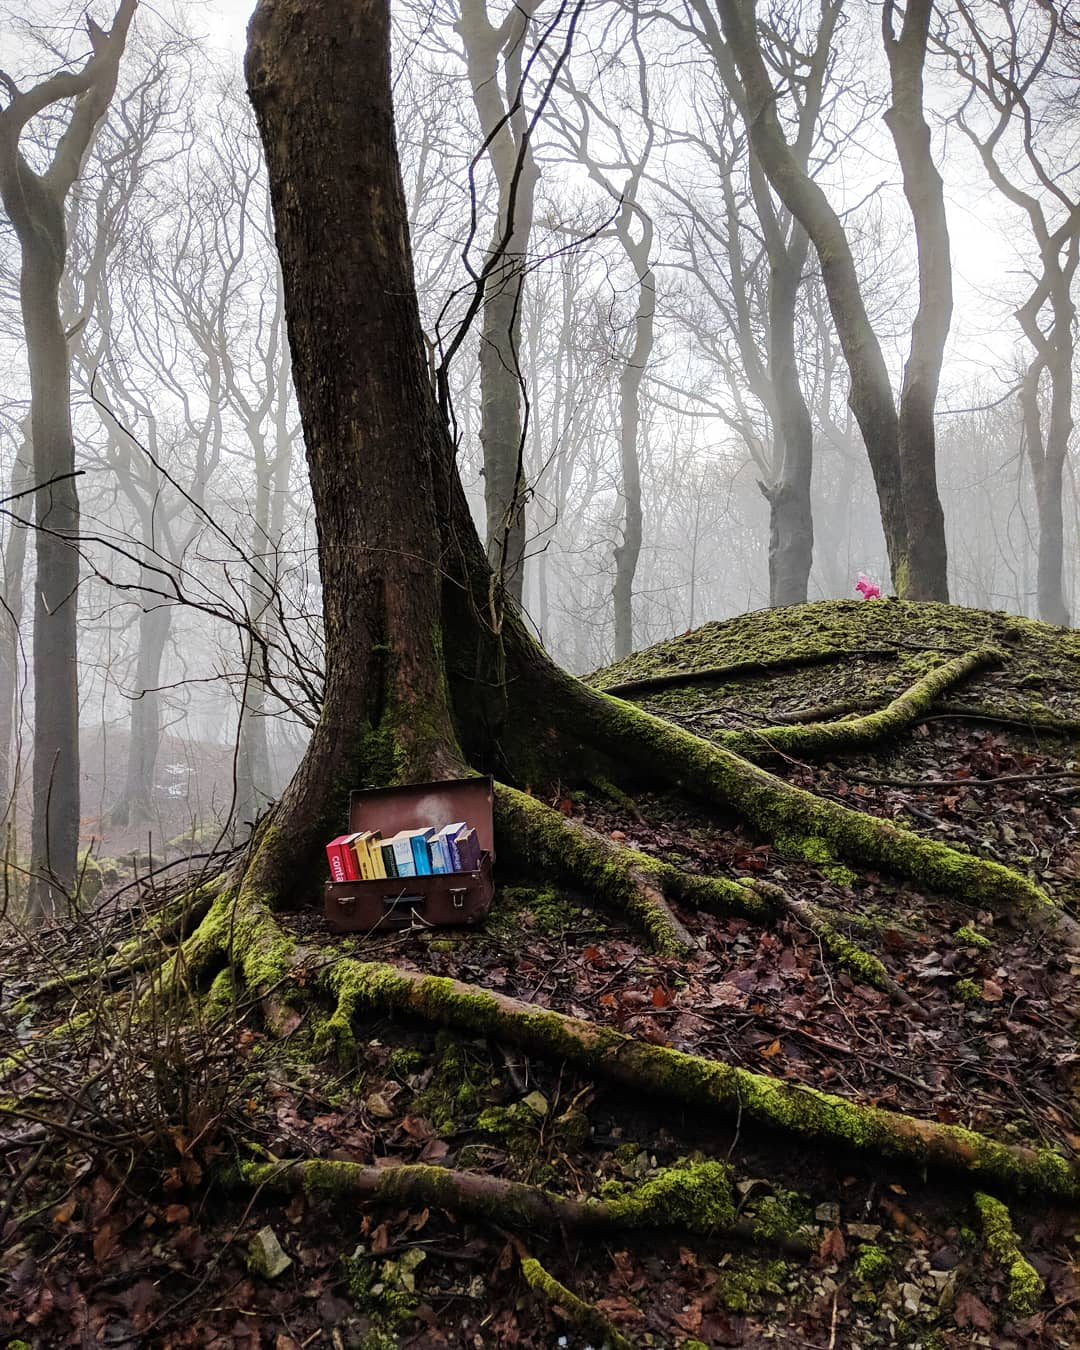 A suitcase of rainbow books by a tree